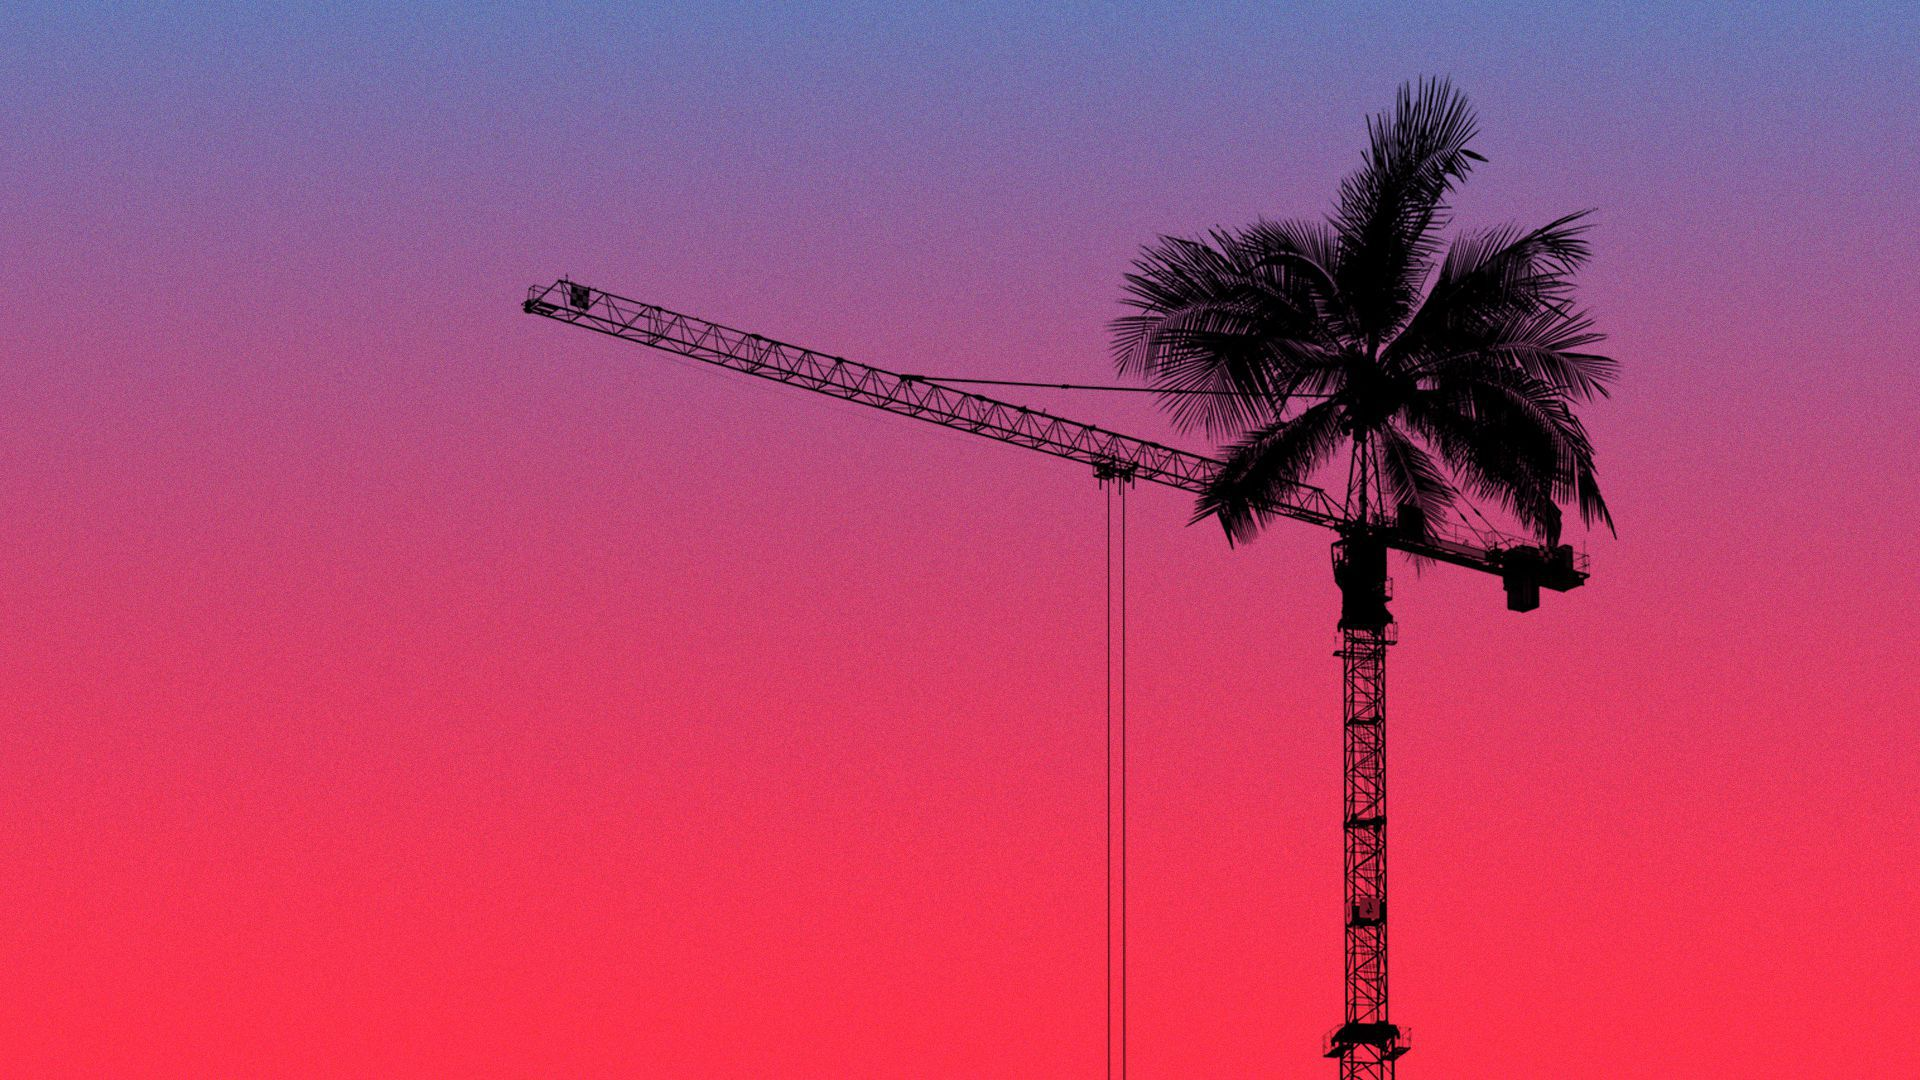 Illustration of a construction crane with palm tree leaves on top of it.